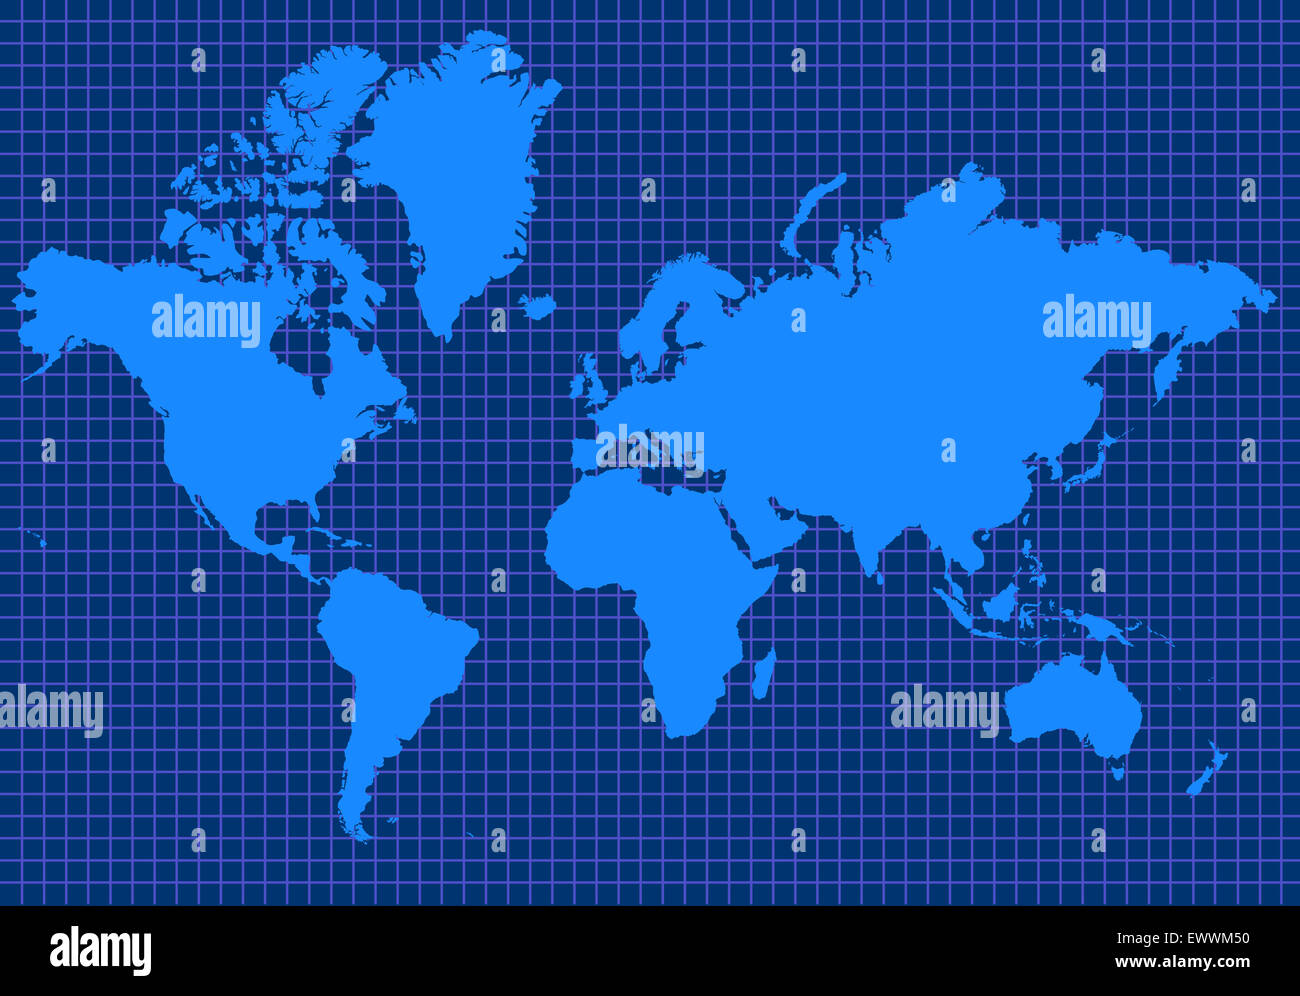 Blue global map with blue grid lines Stock Photo: 84772492 - Alamy